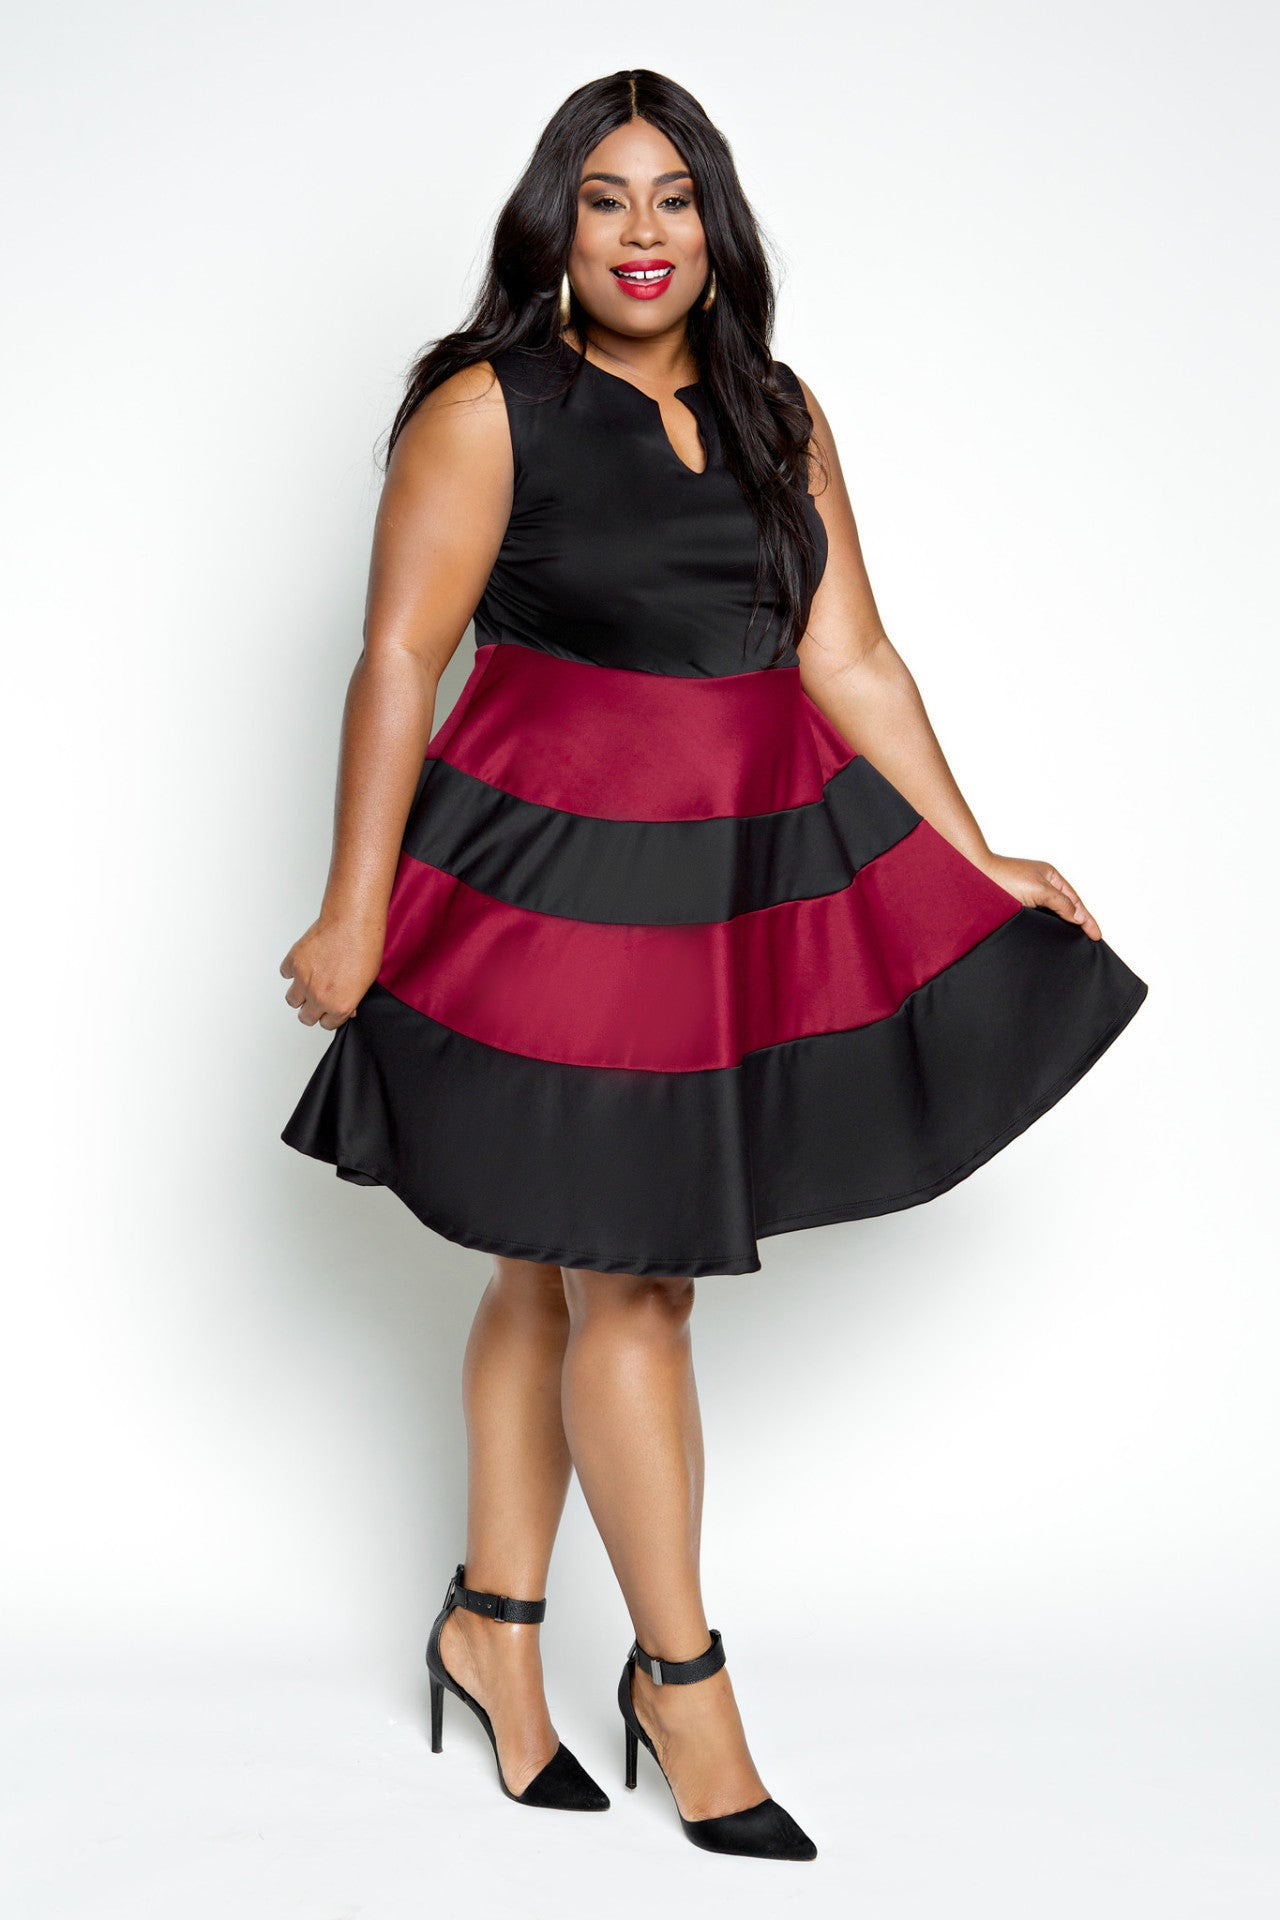 After the sell out of her last skater dress, Jessica has created three more perfect for fall layering. Available in 3 colors. Made of scuba like fabric with nice stretch and wrinkle proof! If you get hot easily, layer a blazer over this perfect dress for fall like Jessica! Fabric 95% Polyester, 5% Spandex